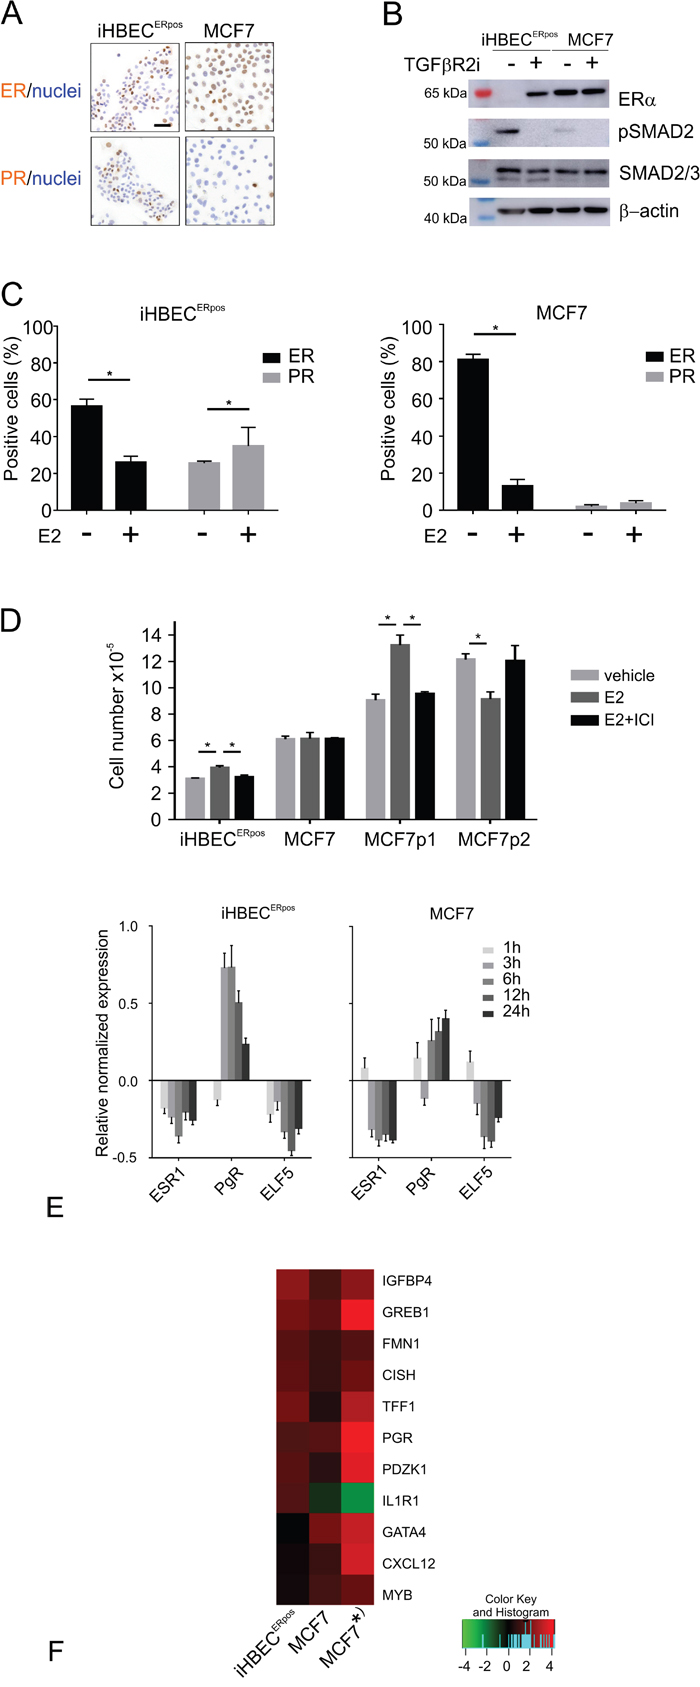 iHBECERpos and MCF7 cells respond differently to TGFβR inhibitors and estrogen.